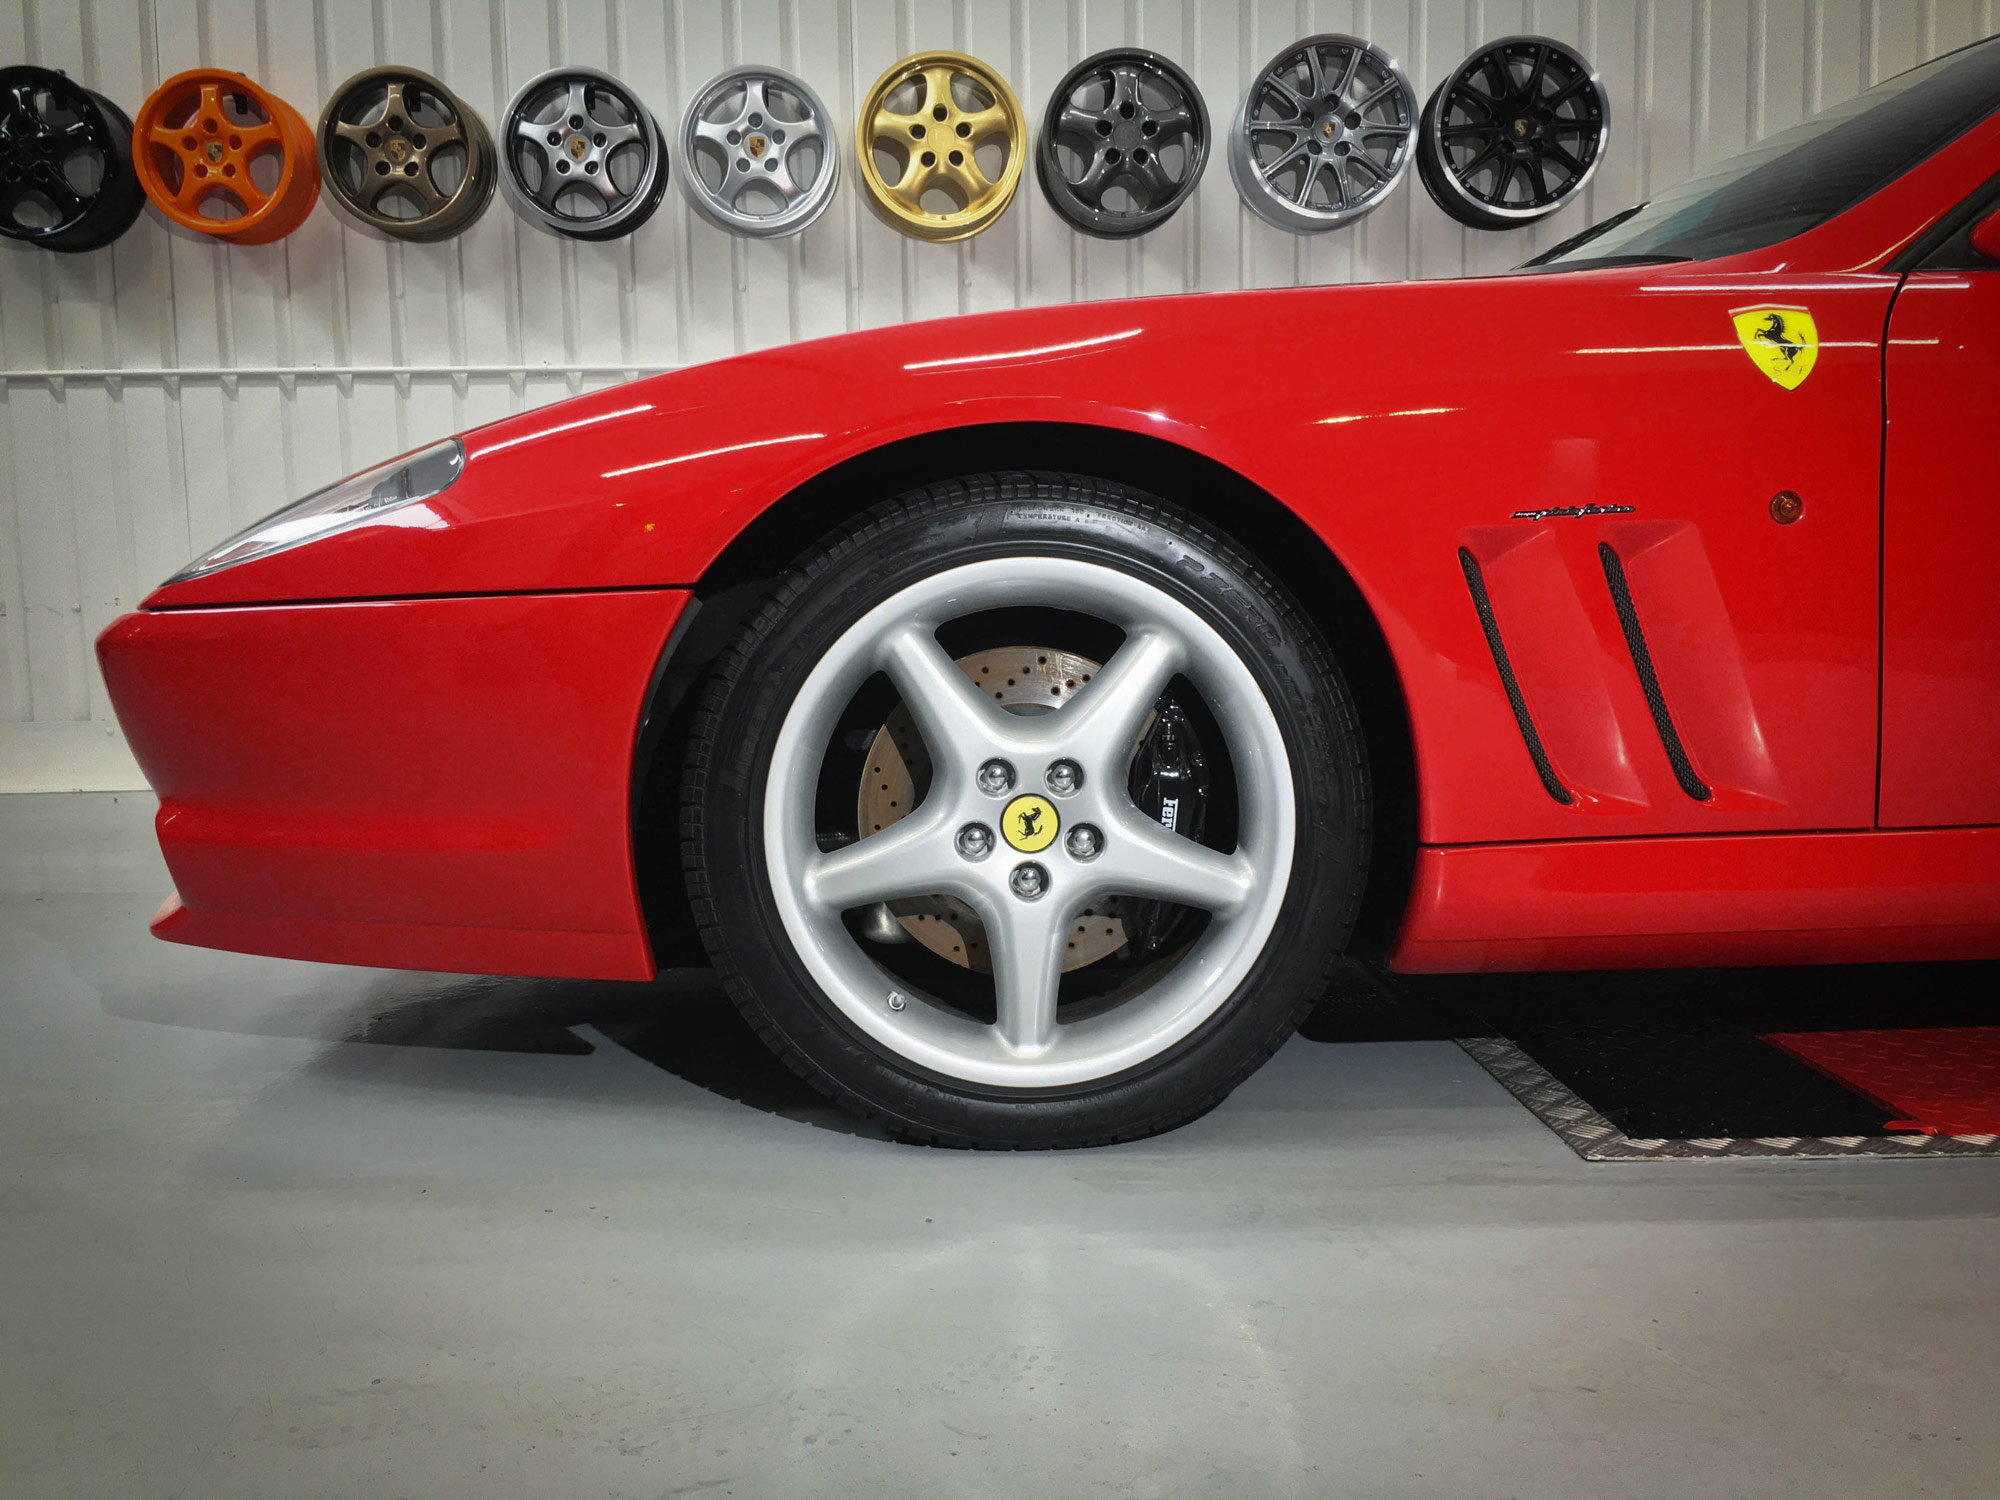 Ferrari_550_Maranello-front-alloys